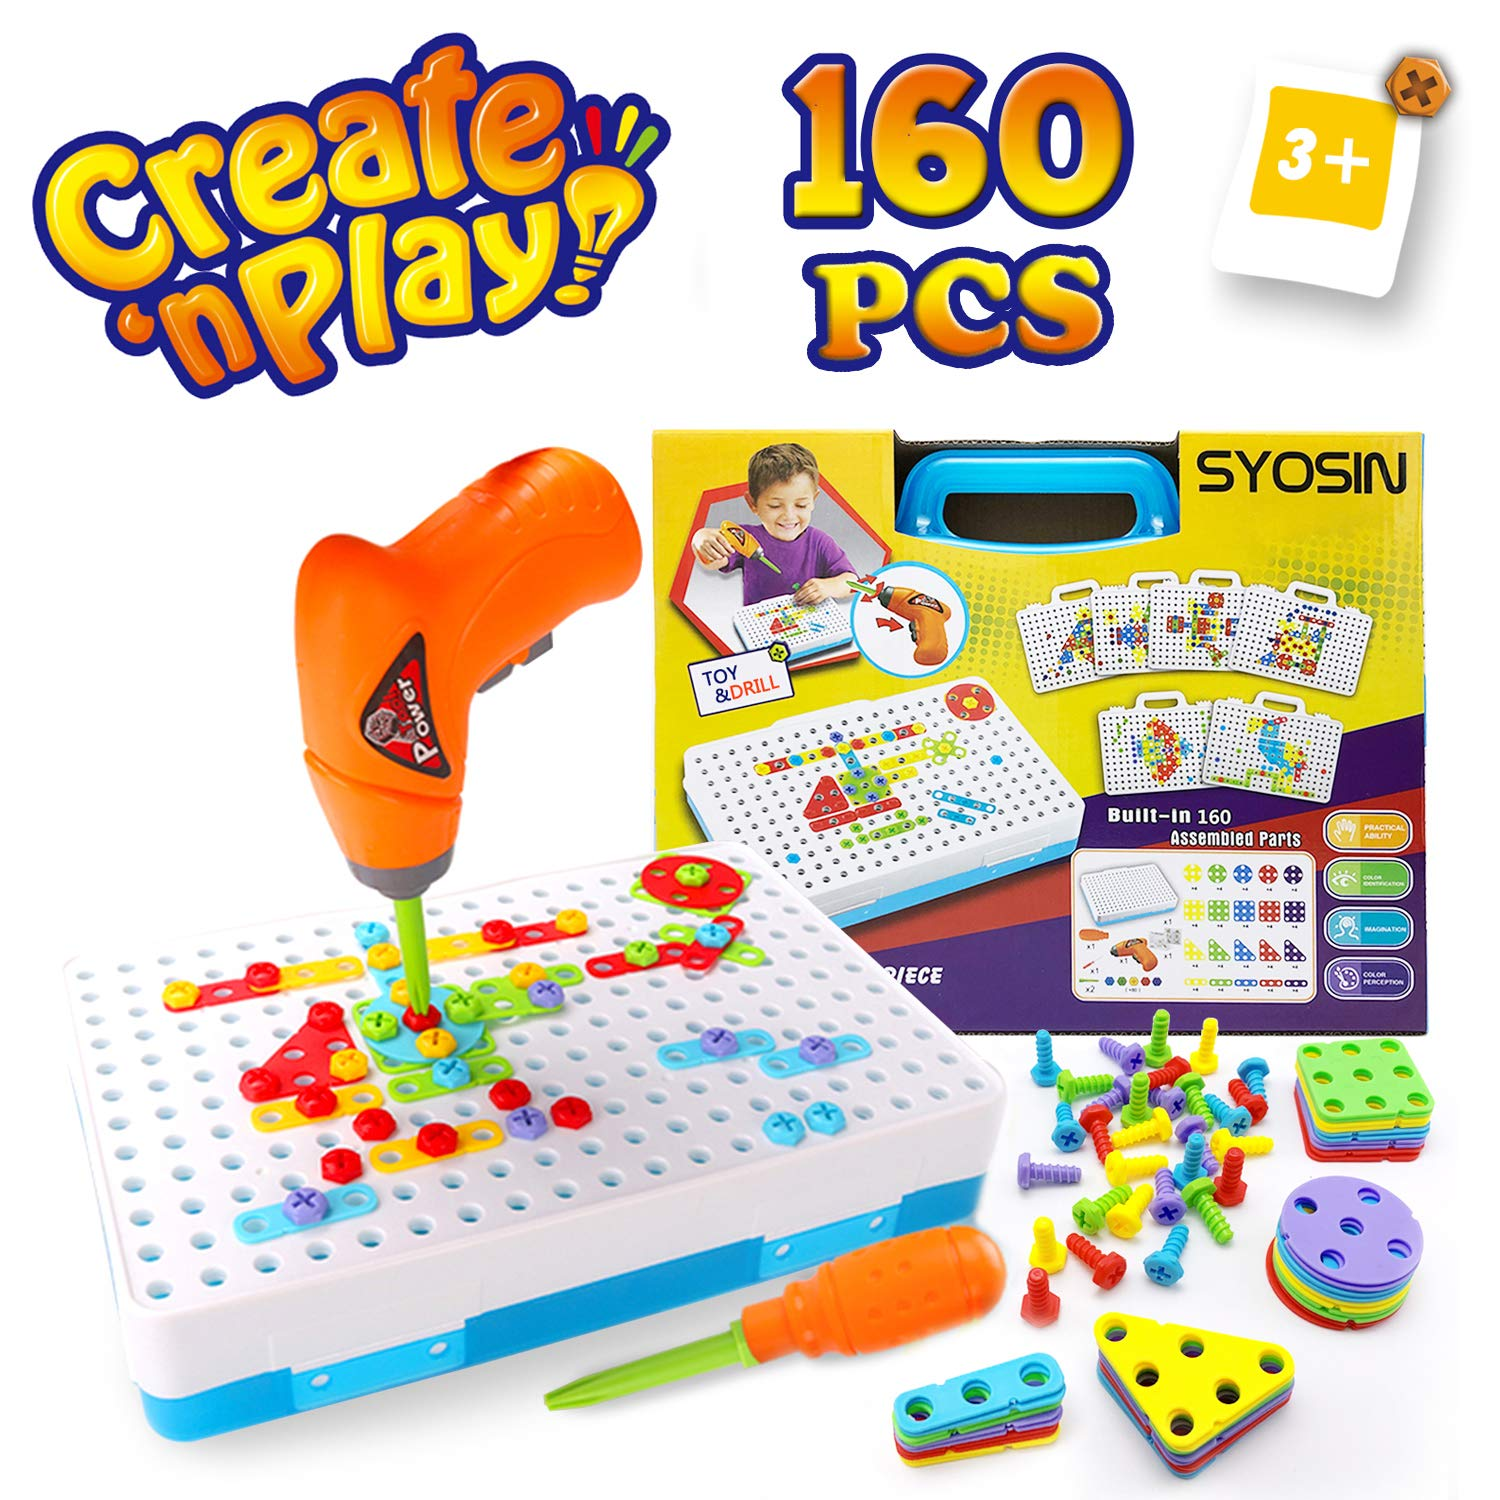 SYOSIN Construction Toy Drill for 3-8 Year Old Boys & Girls Toy - Screw Toy Kids Drill Set - Creative Puzzle Educational Toys Tool Kit Building Blocks Fine Motor Skills Activity Center for Kids by SYOSIN